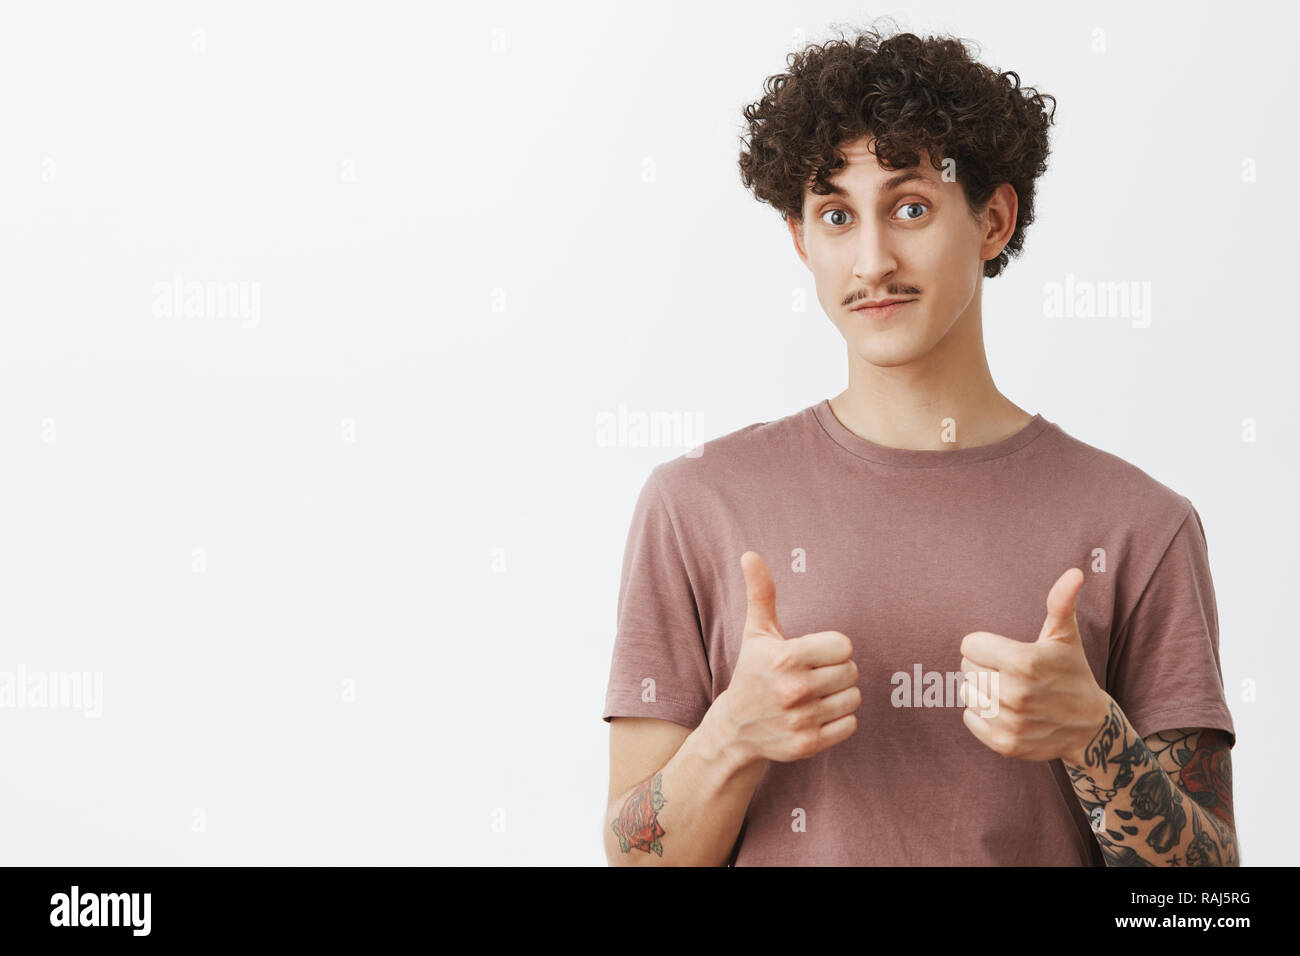 Nice really like it. Surprised and impressed good-looking stylish male friend with moustache and curly hairstyle showing thumbs up raising eyebrows and nodding in approval gesture being supportive - Stock Image